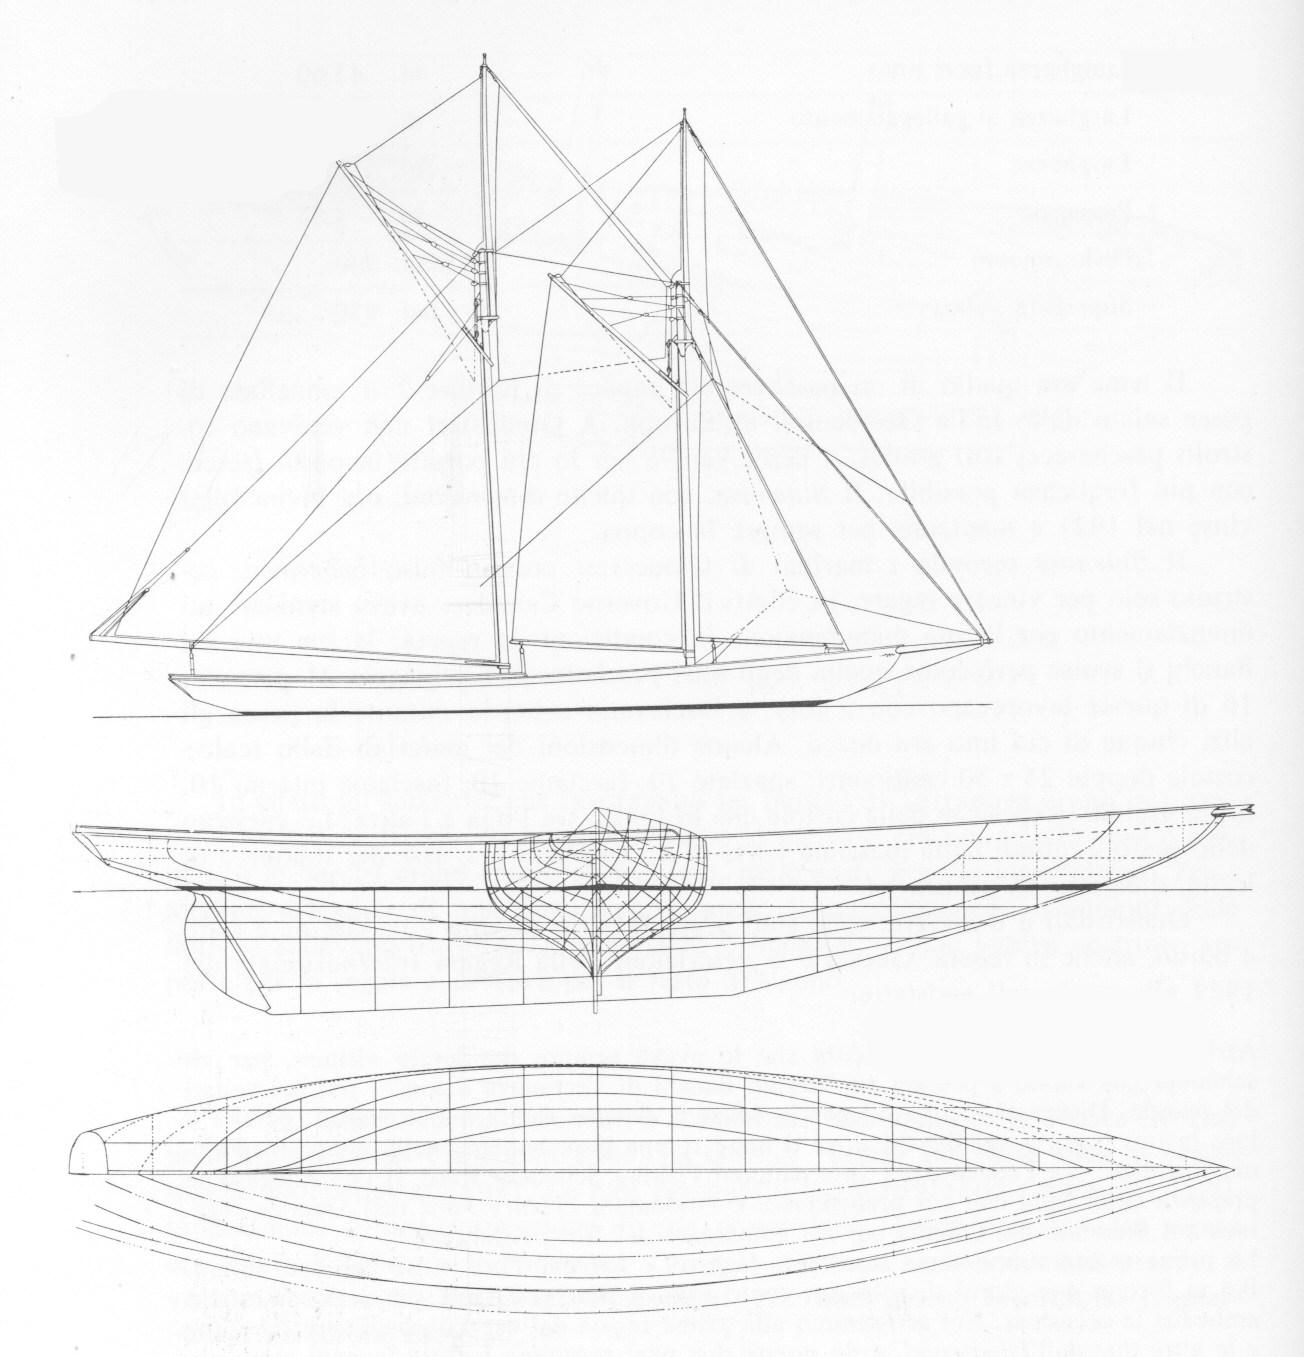 Permalink to wooden sailboat plans free download